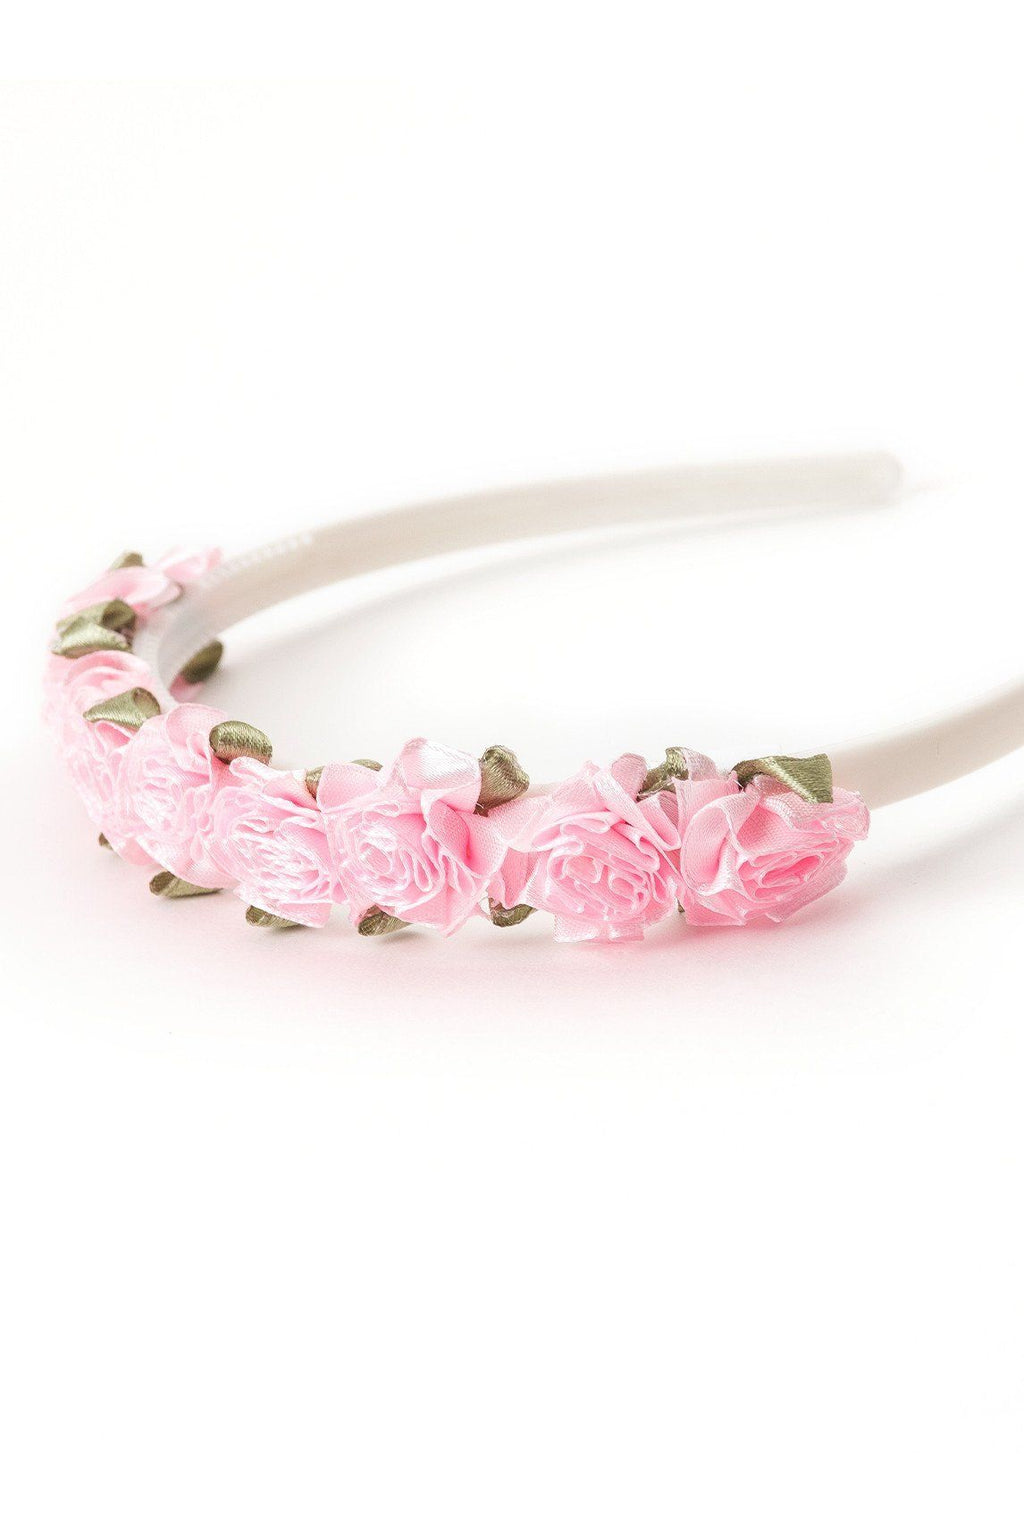 Accessories - Flower Headband Pink